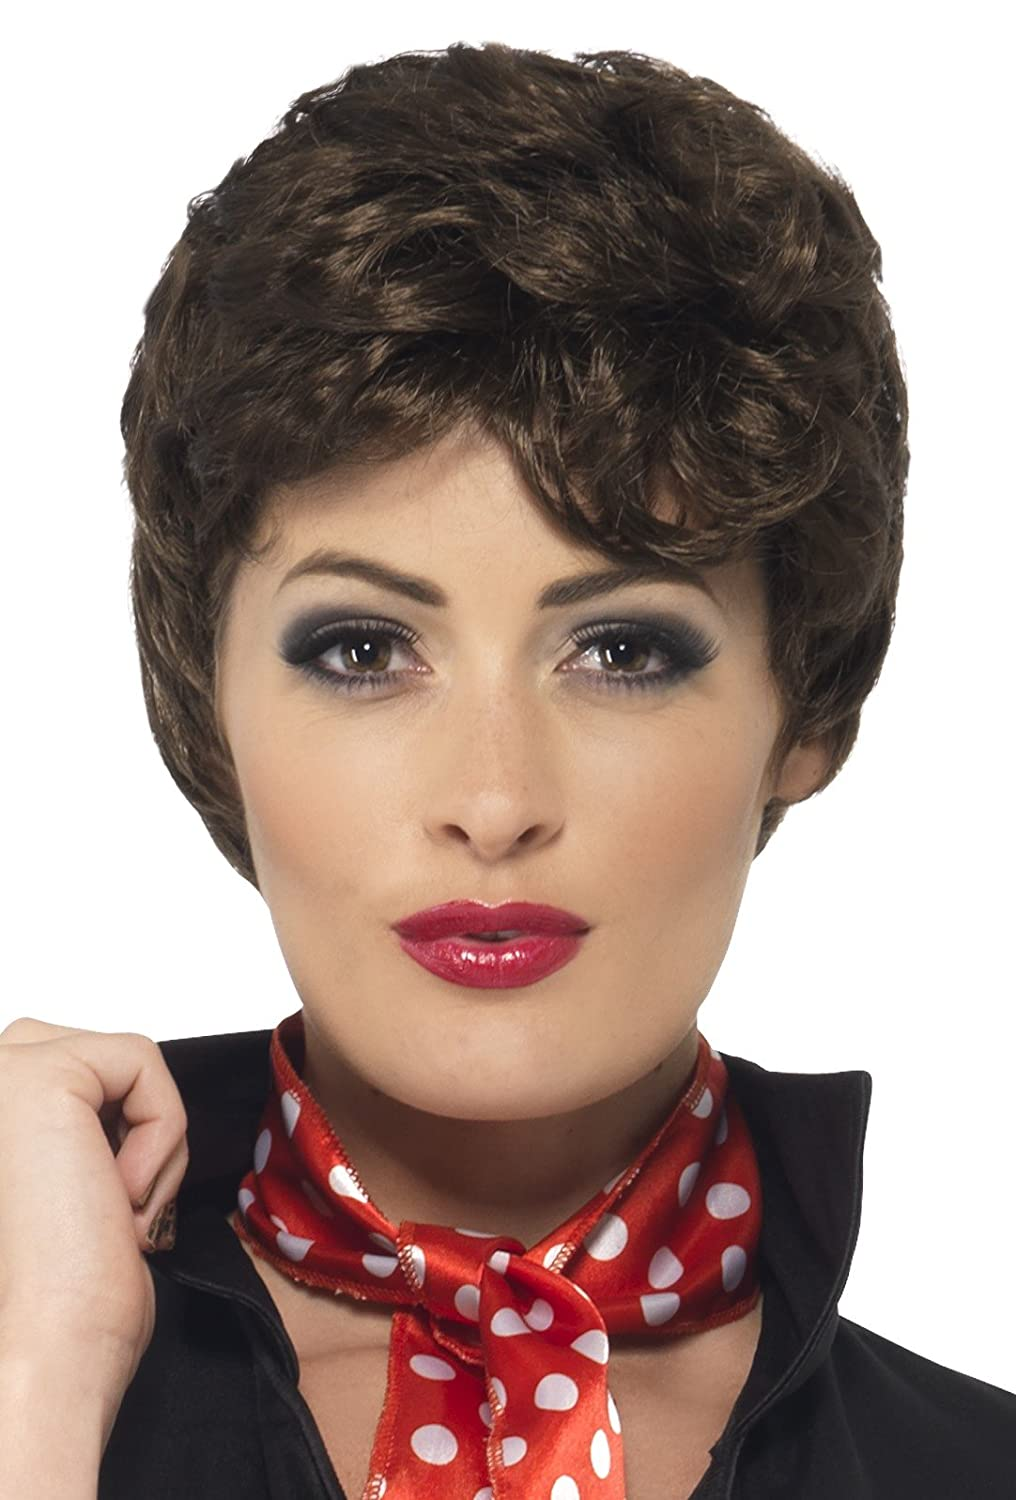 Vintage Hair Accessories: Combs, Headbands, Flowers, Scarf, Wigs Brown Short Grease Rizzo Wig $16.65 AT vintagedancer.com